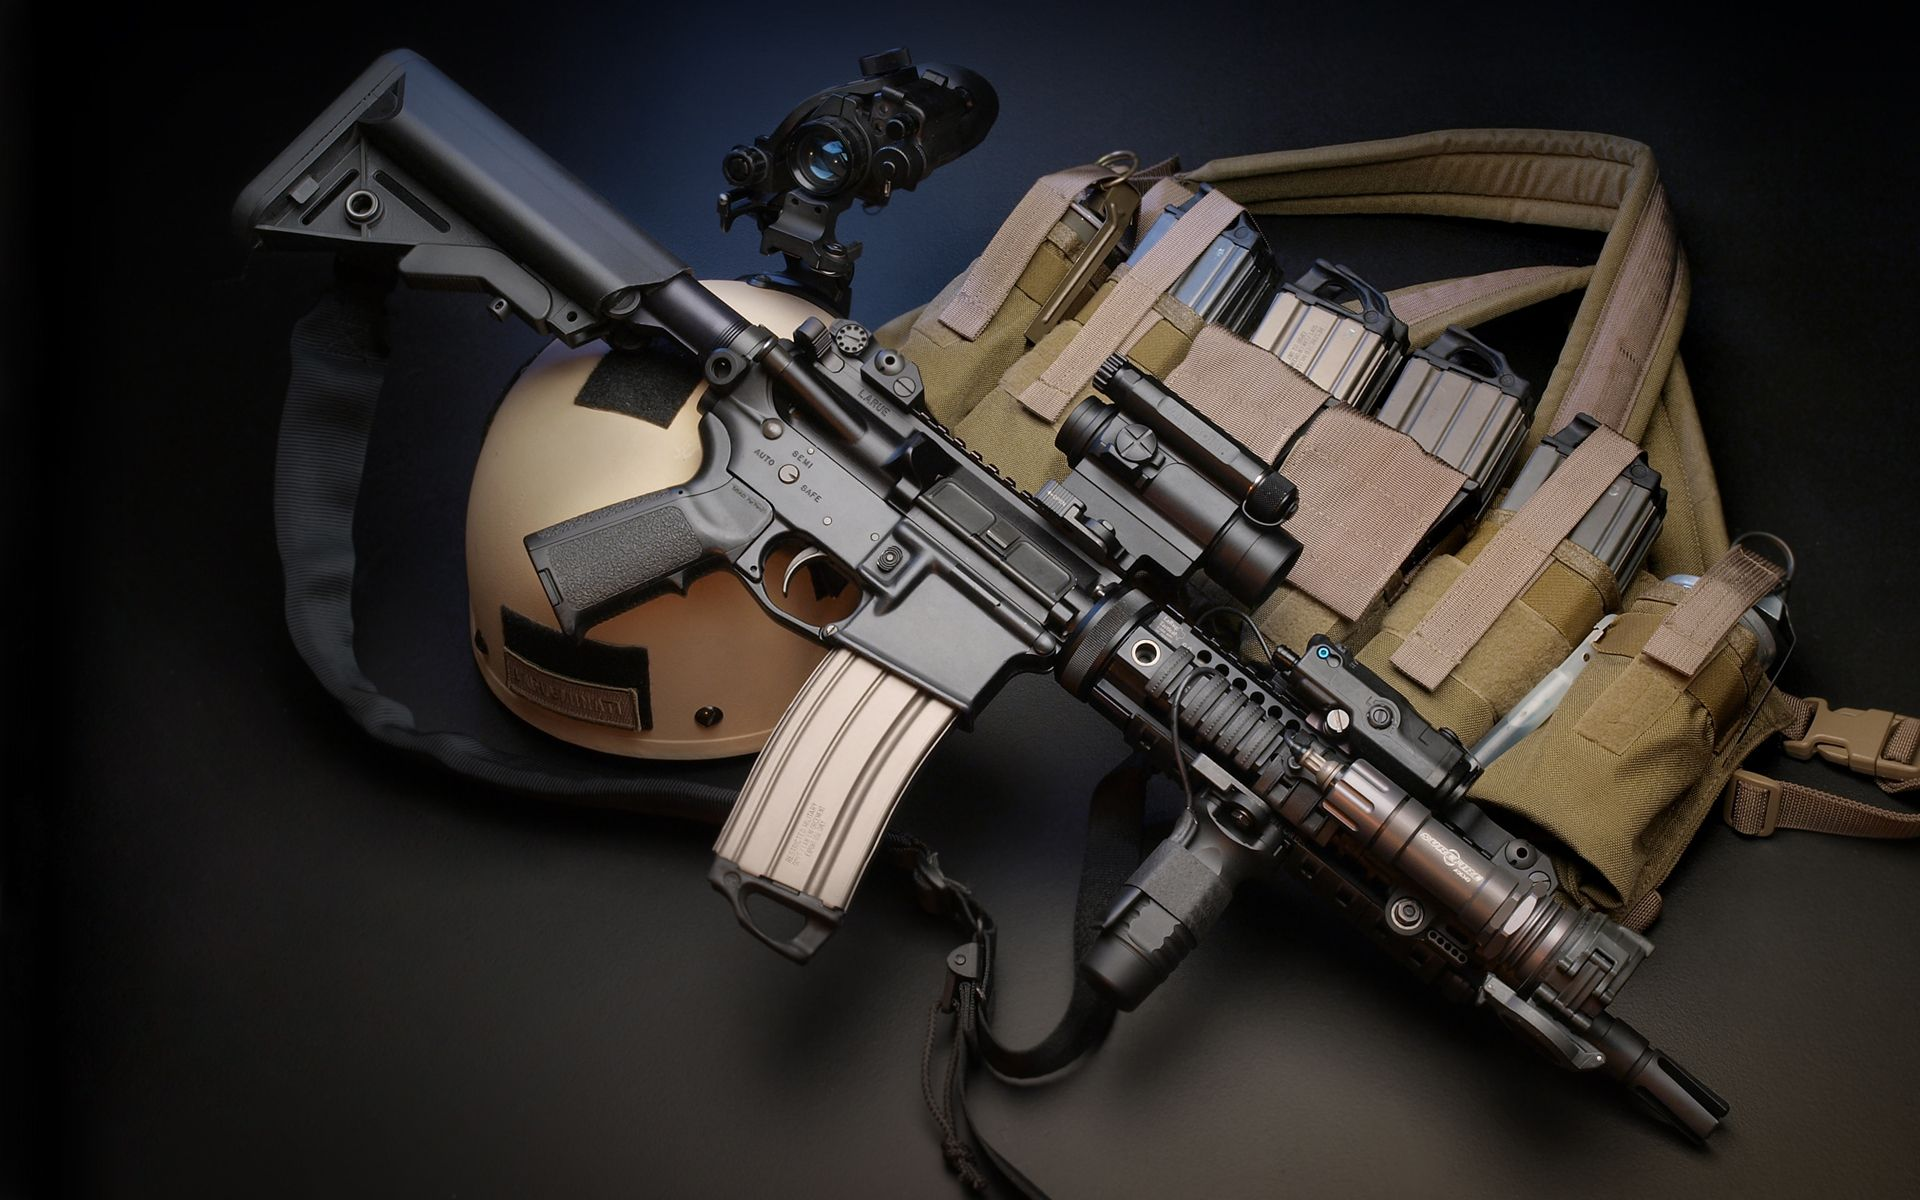 108 Best Images About Weapons Wallpapers On Pinterest: Machine Gun